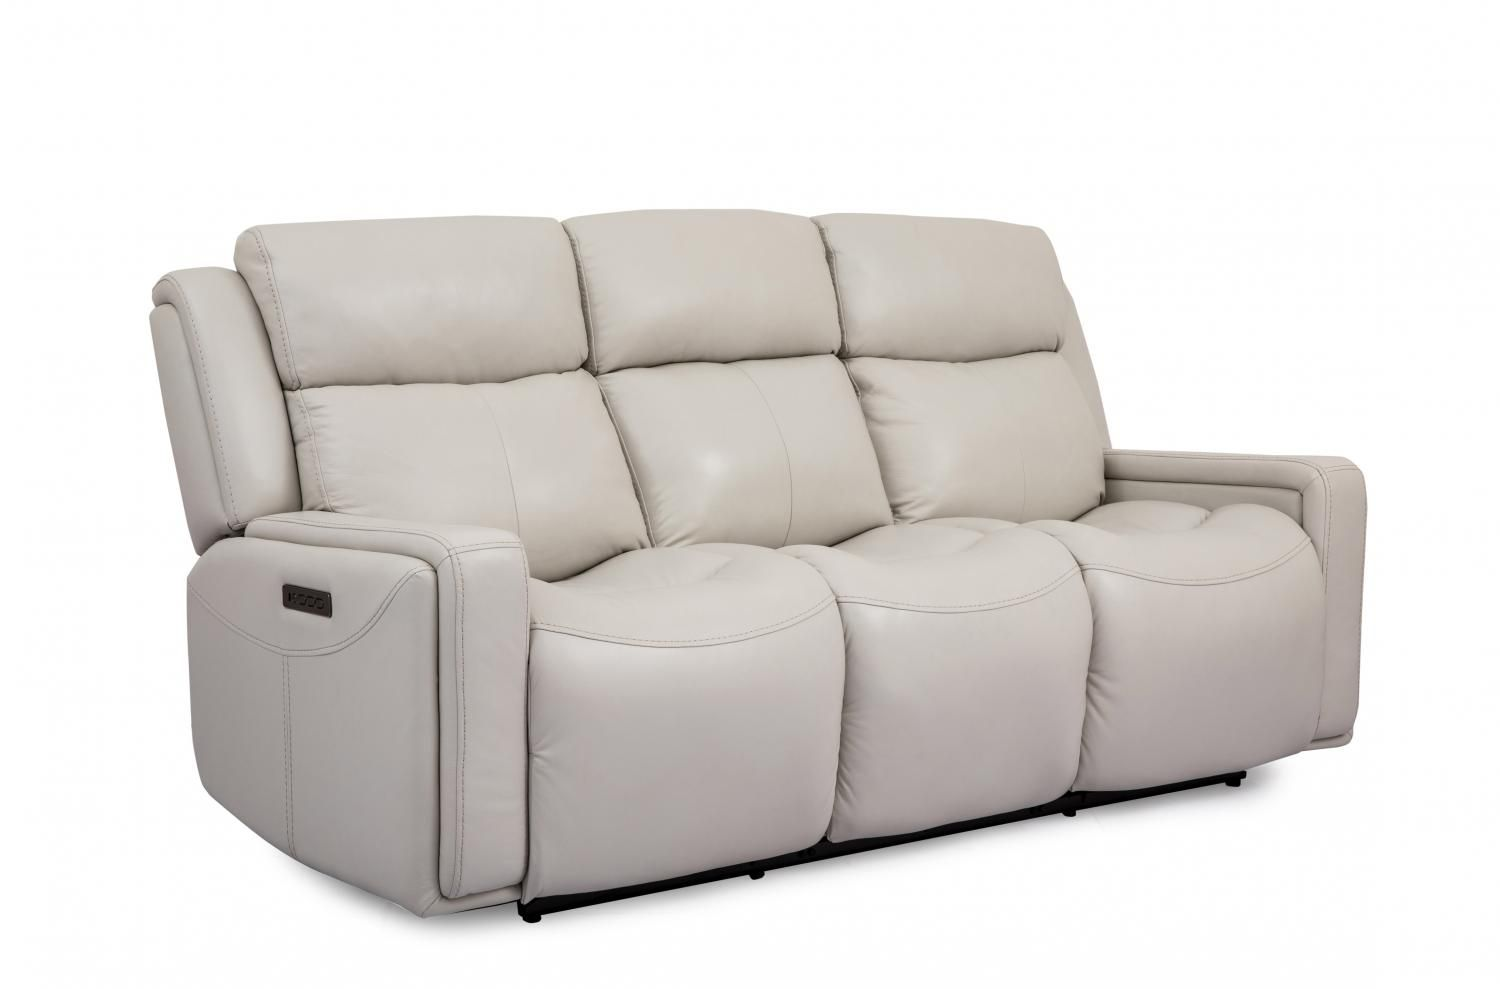 5772l32ezh4526 Cheers Leather Dual Power Sofa With Power Headrests